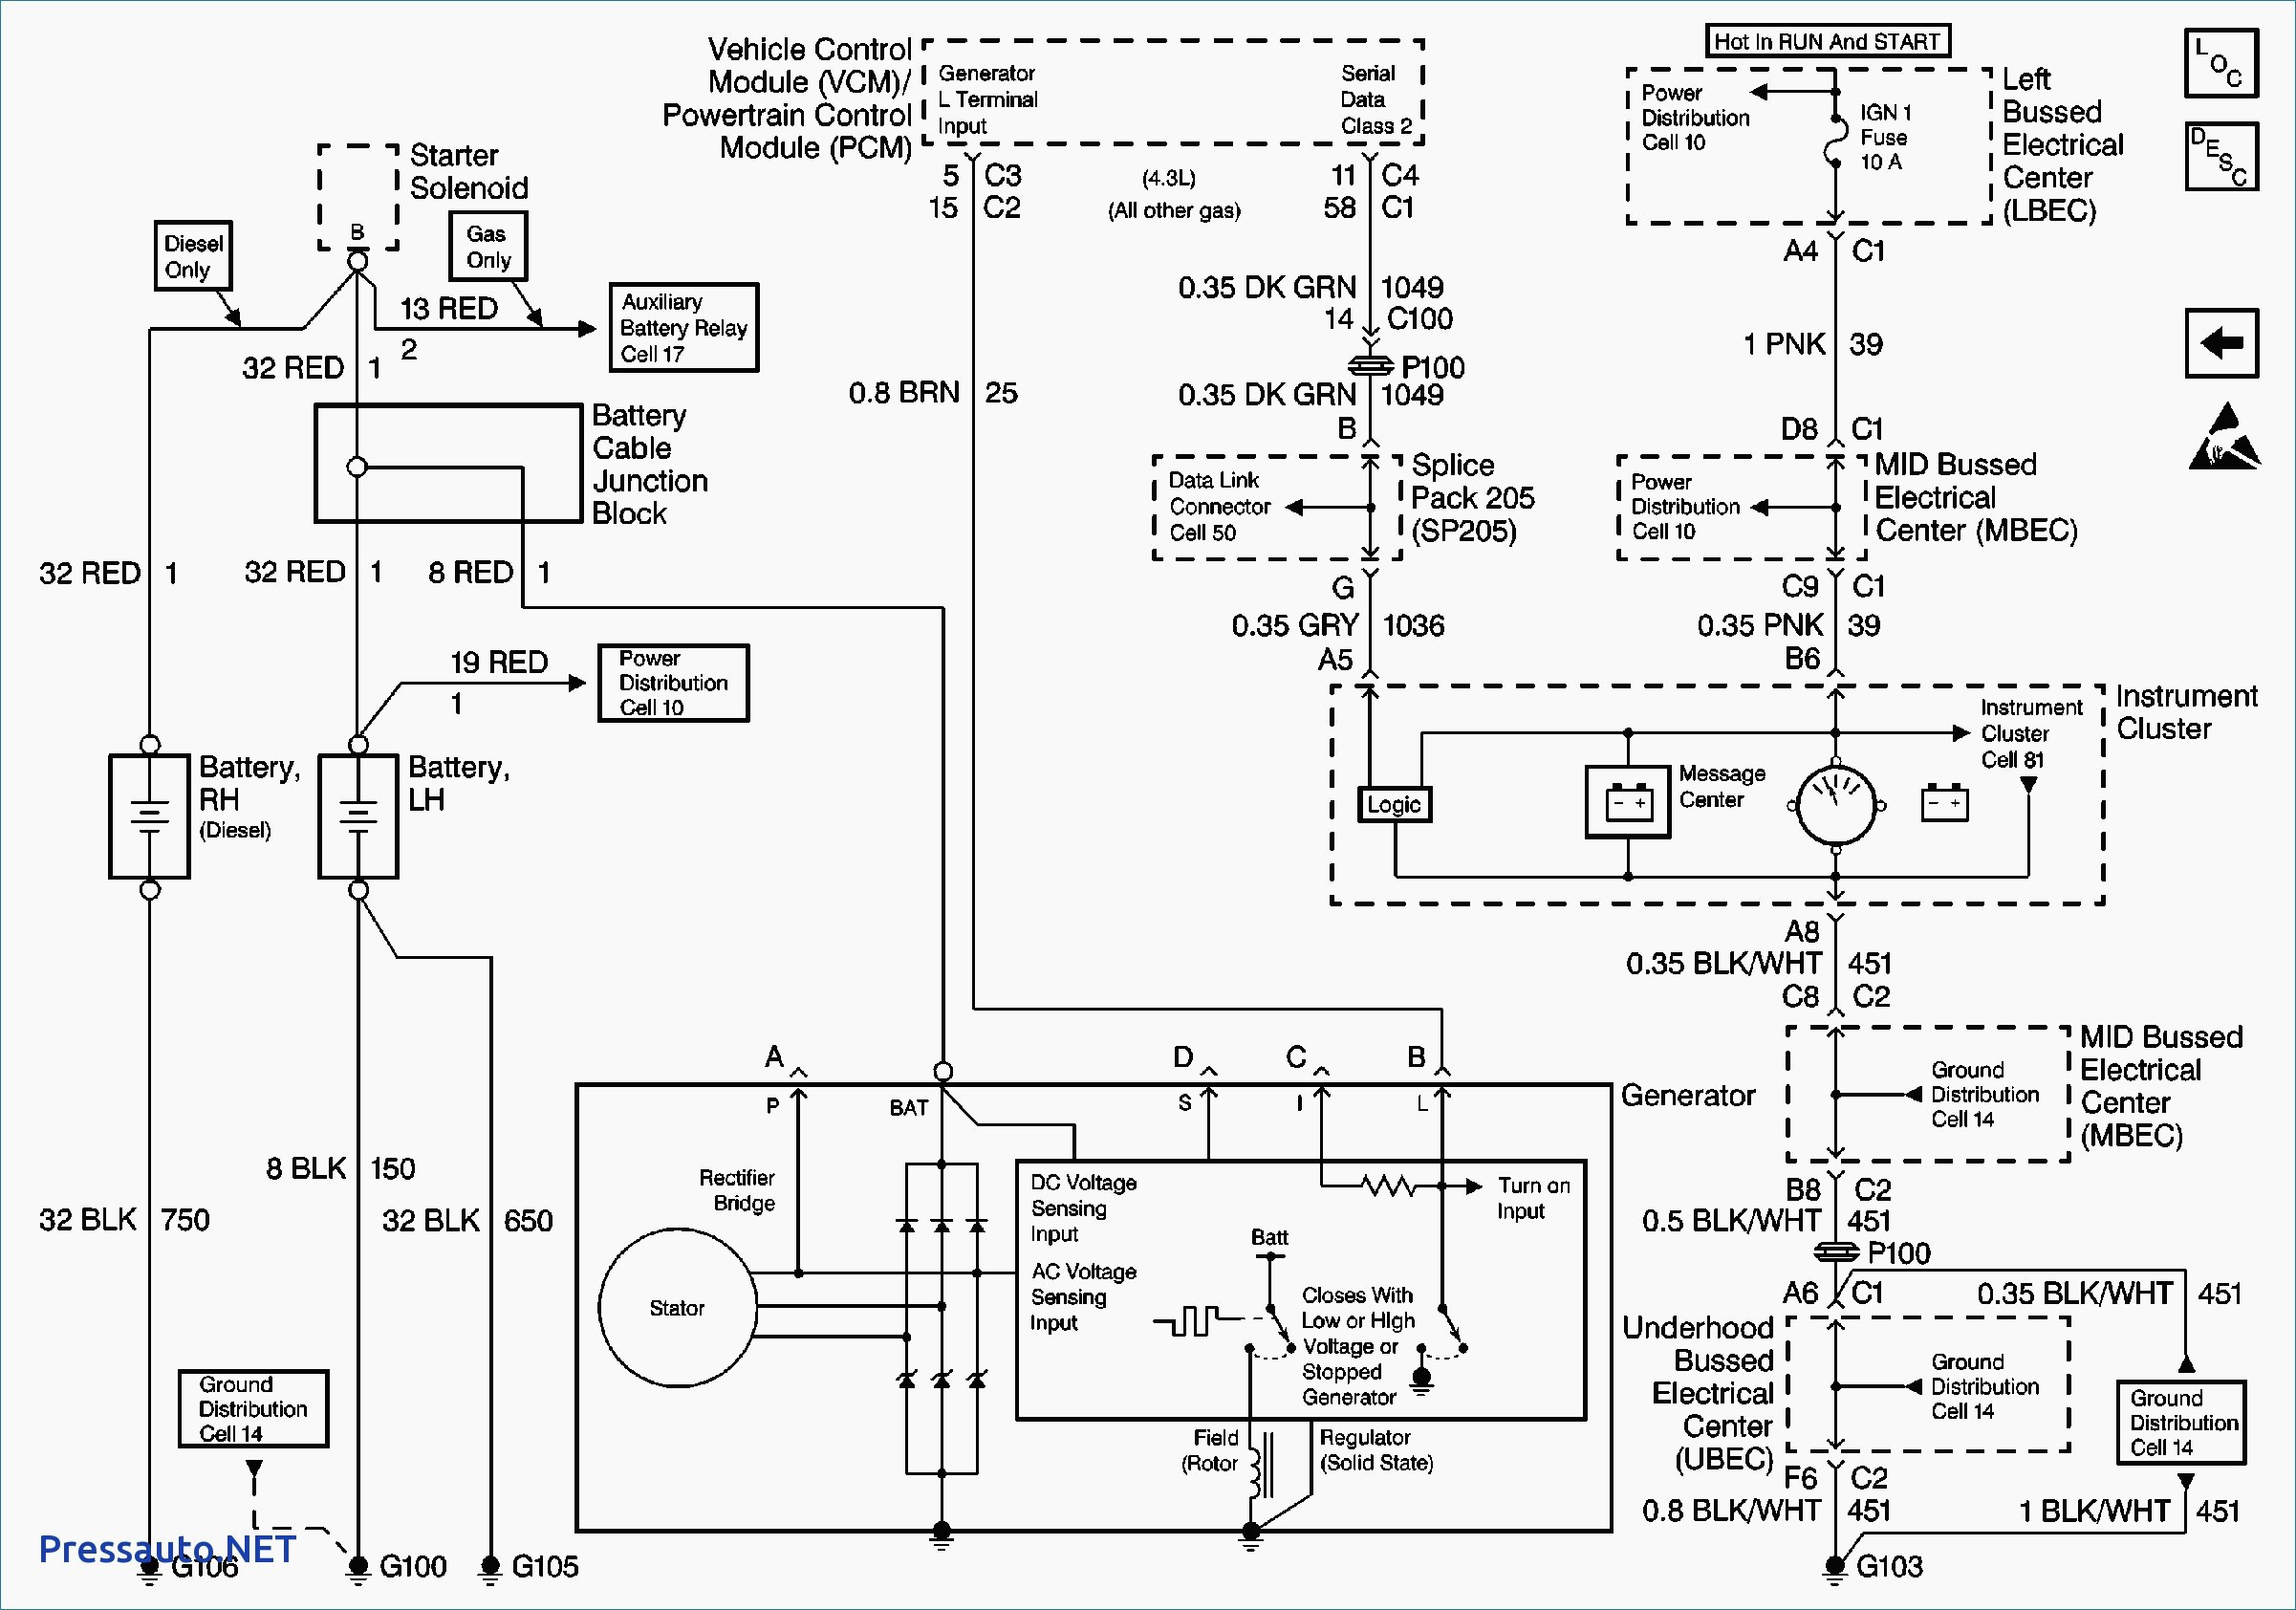 2015 Acadia Trailer Wiring Diagram | Wiring Diagram - 2014 Silverado Trailer Wiring Diagram